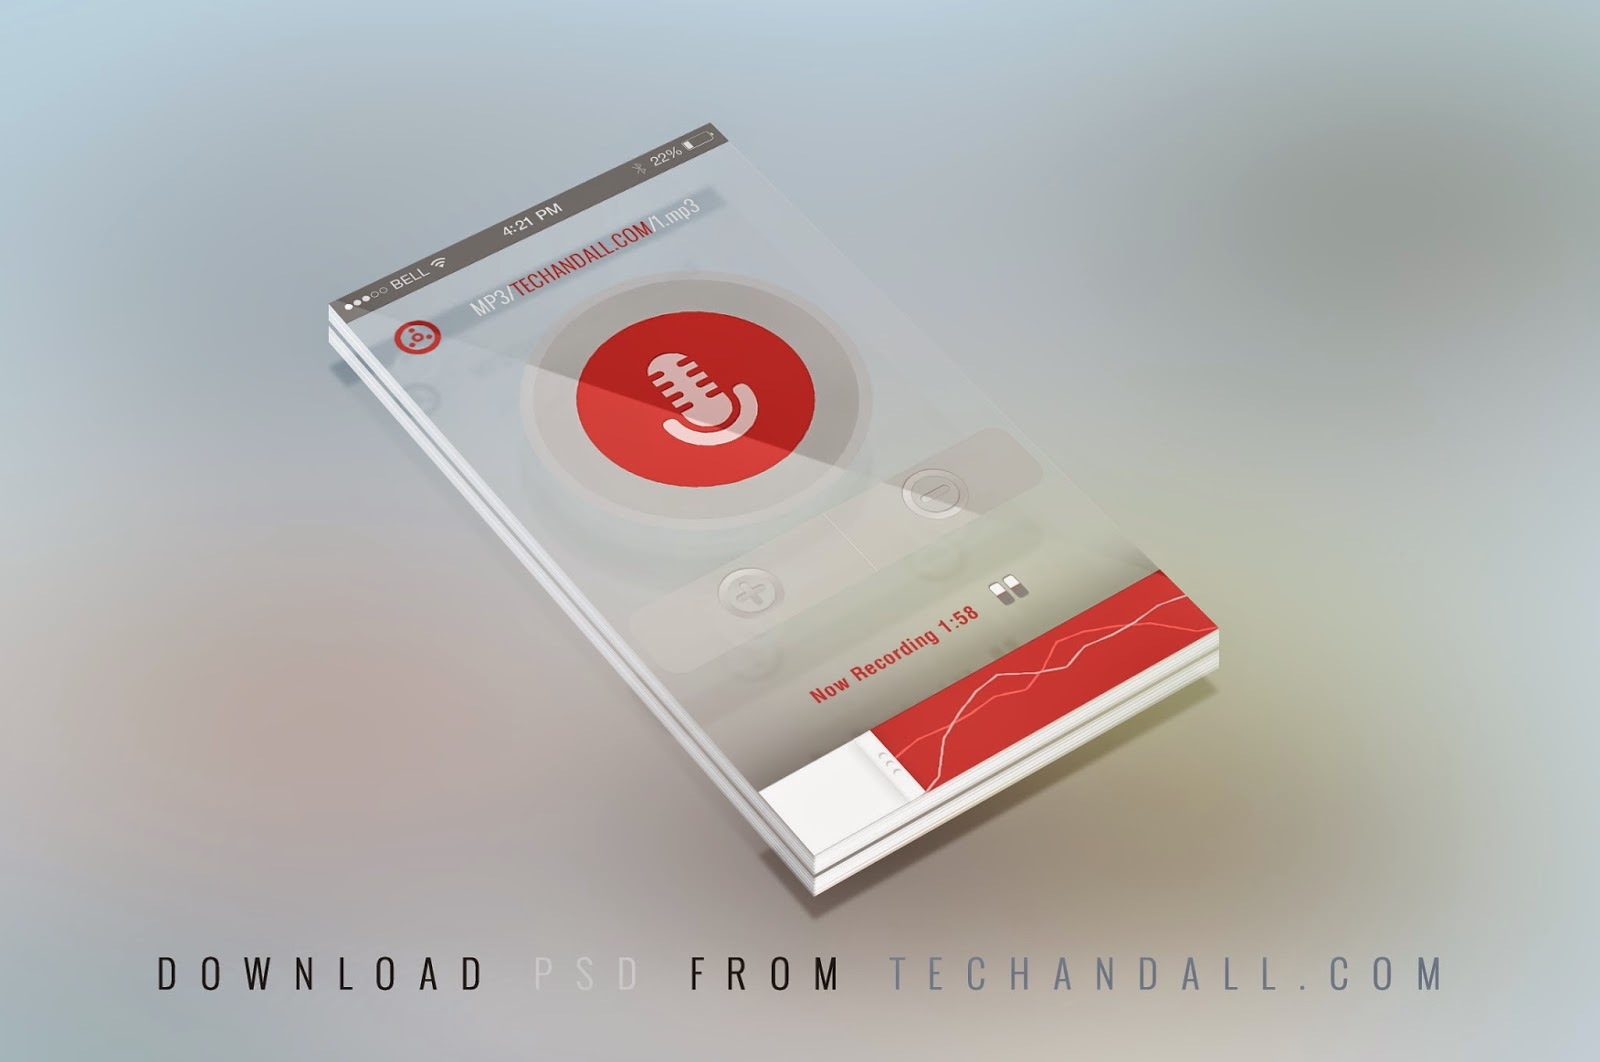 PSD Perspective Mobile Mock-up Screen